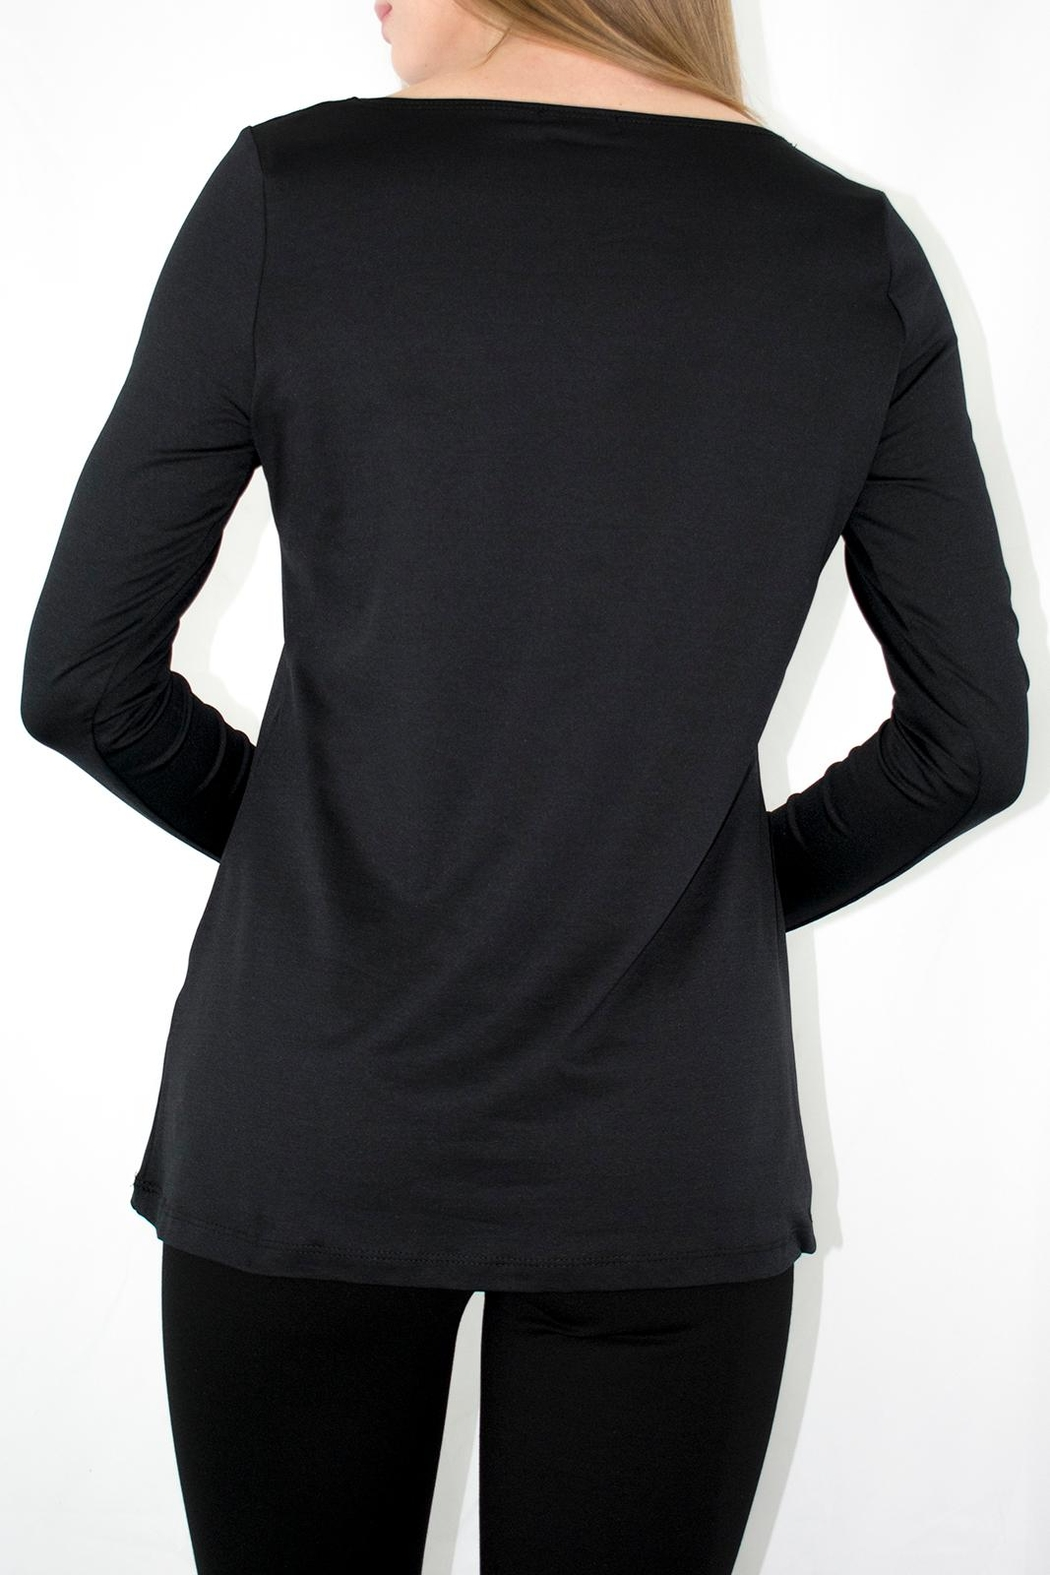 A'Nue Ligne Boatneck Longsleeve Top - Side Cropped Image